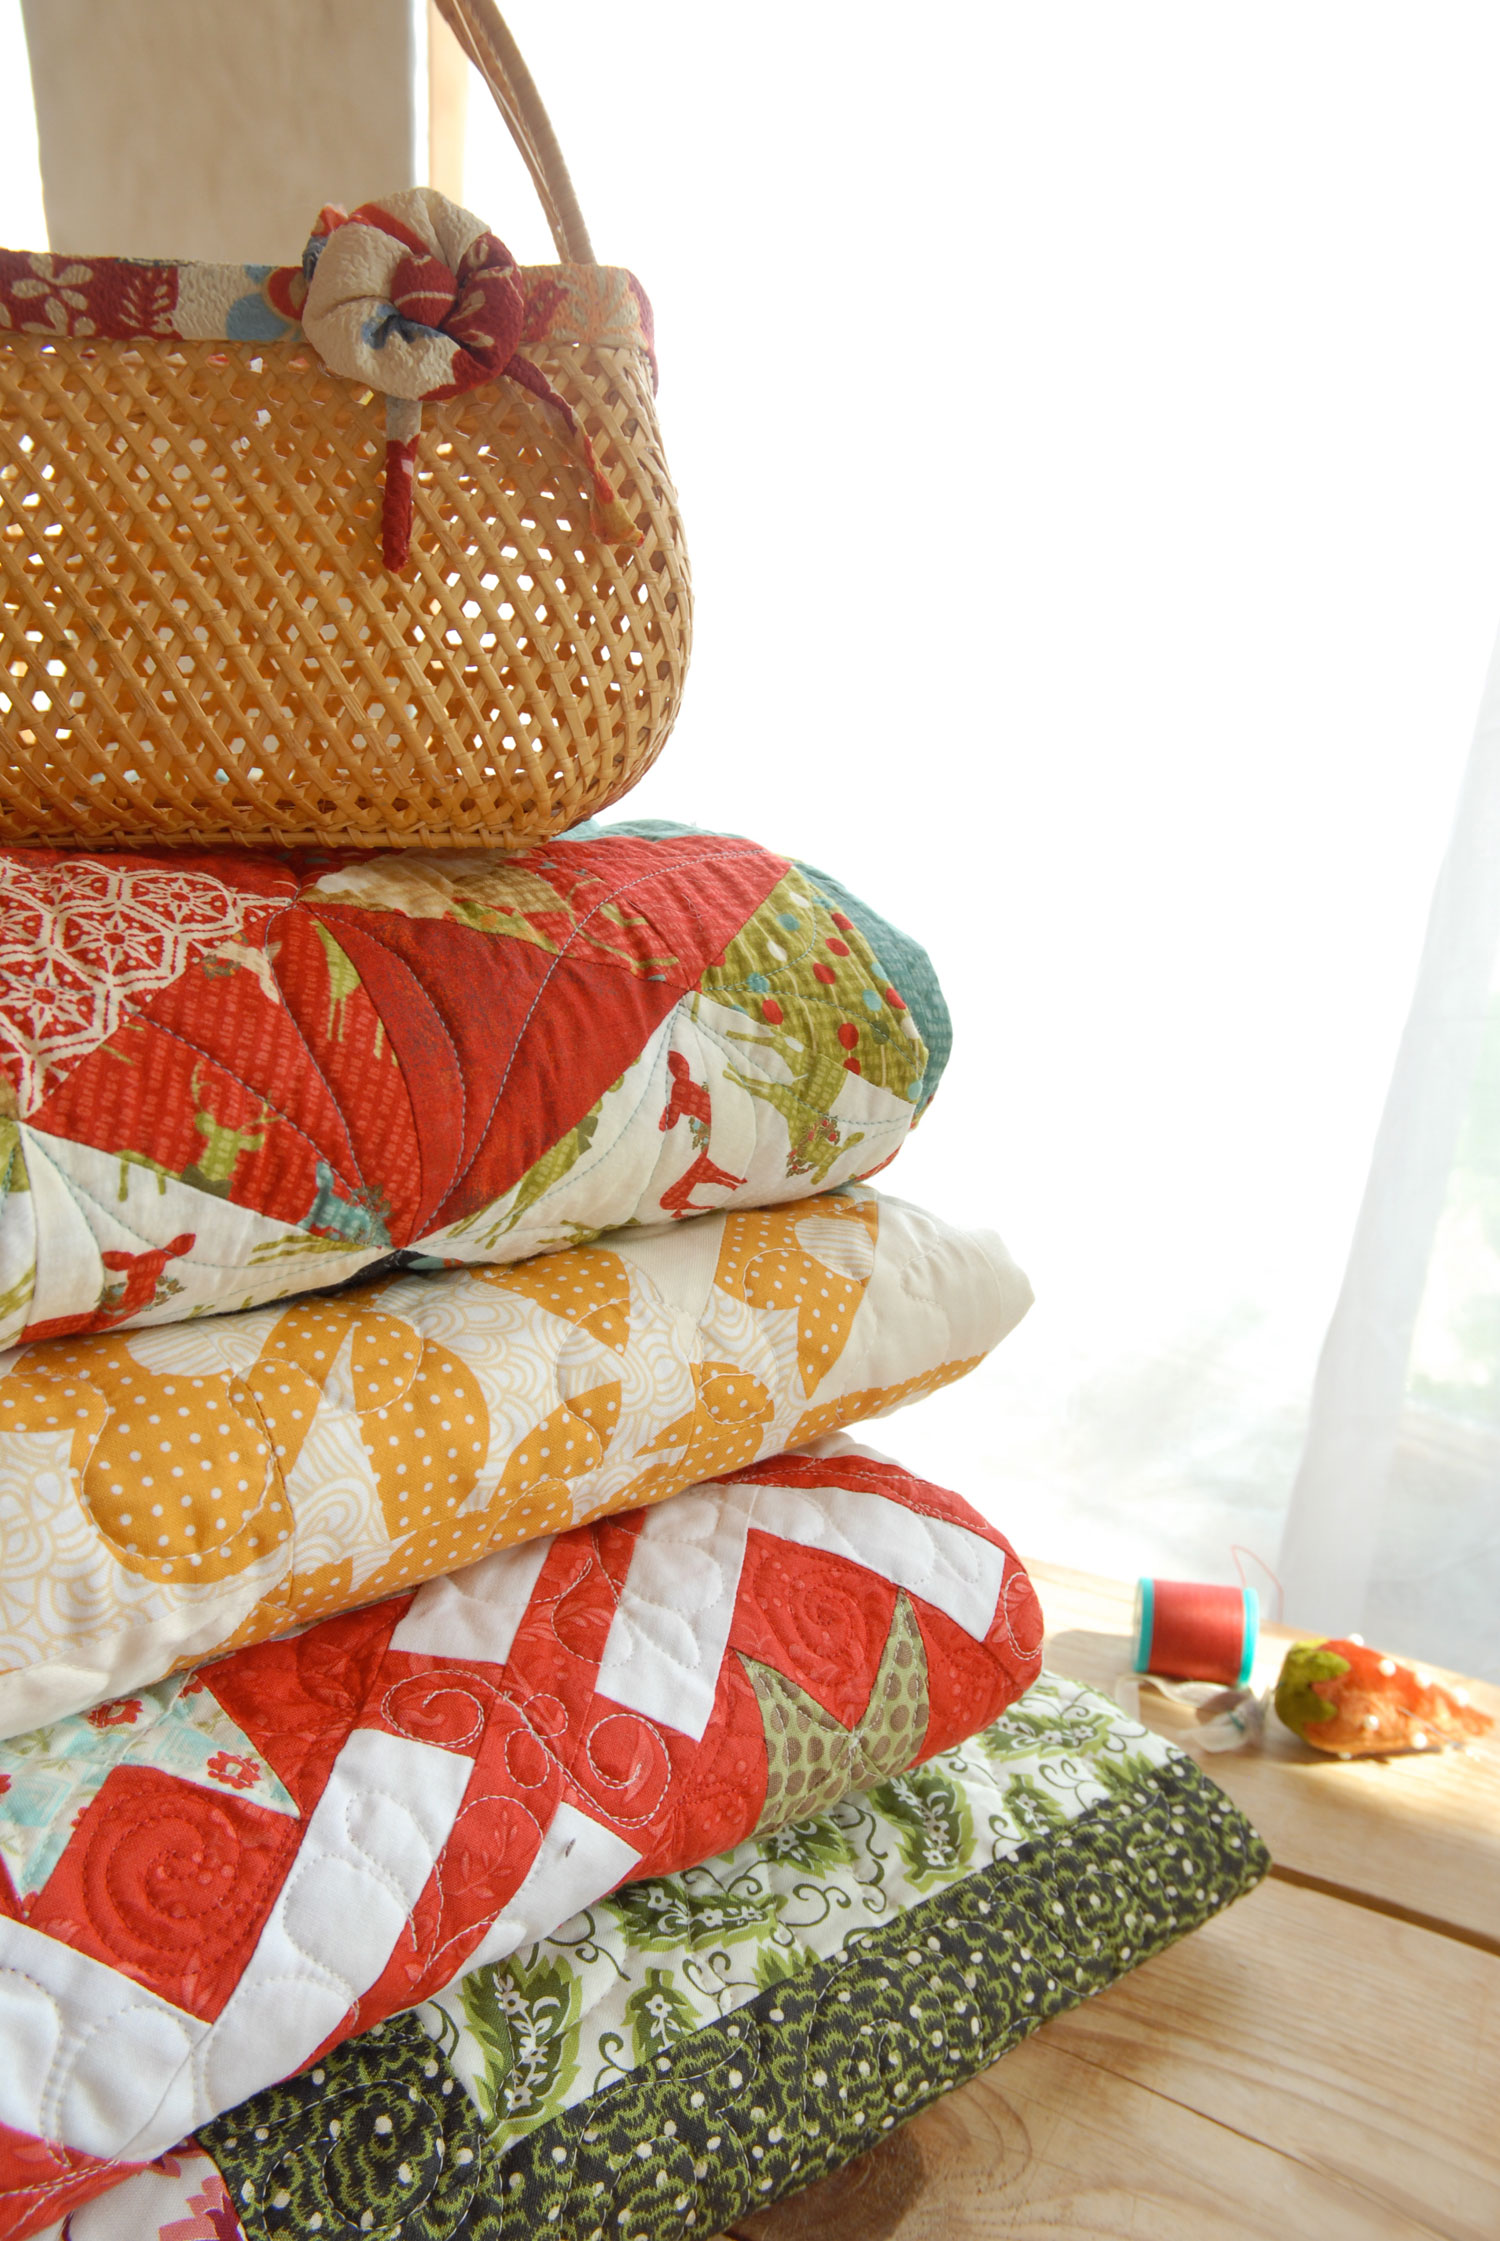 9781454702795_a124-stack-of-quilts-OP.jpg